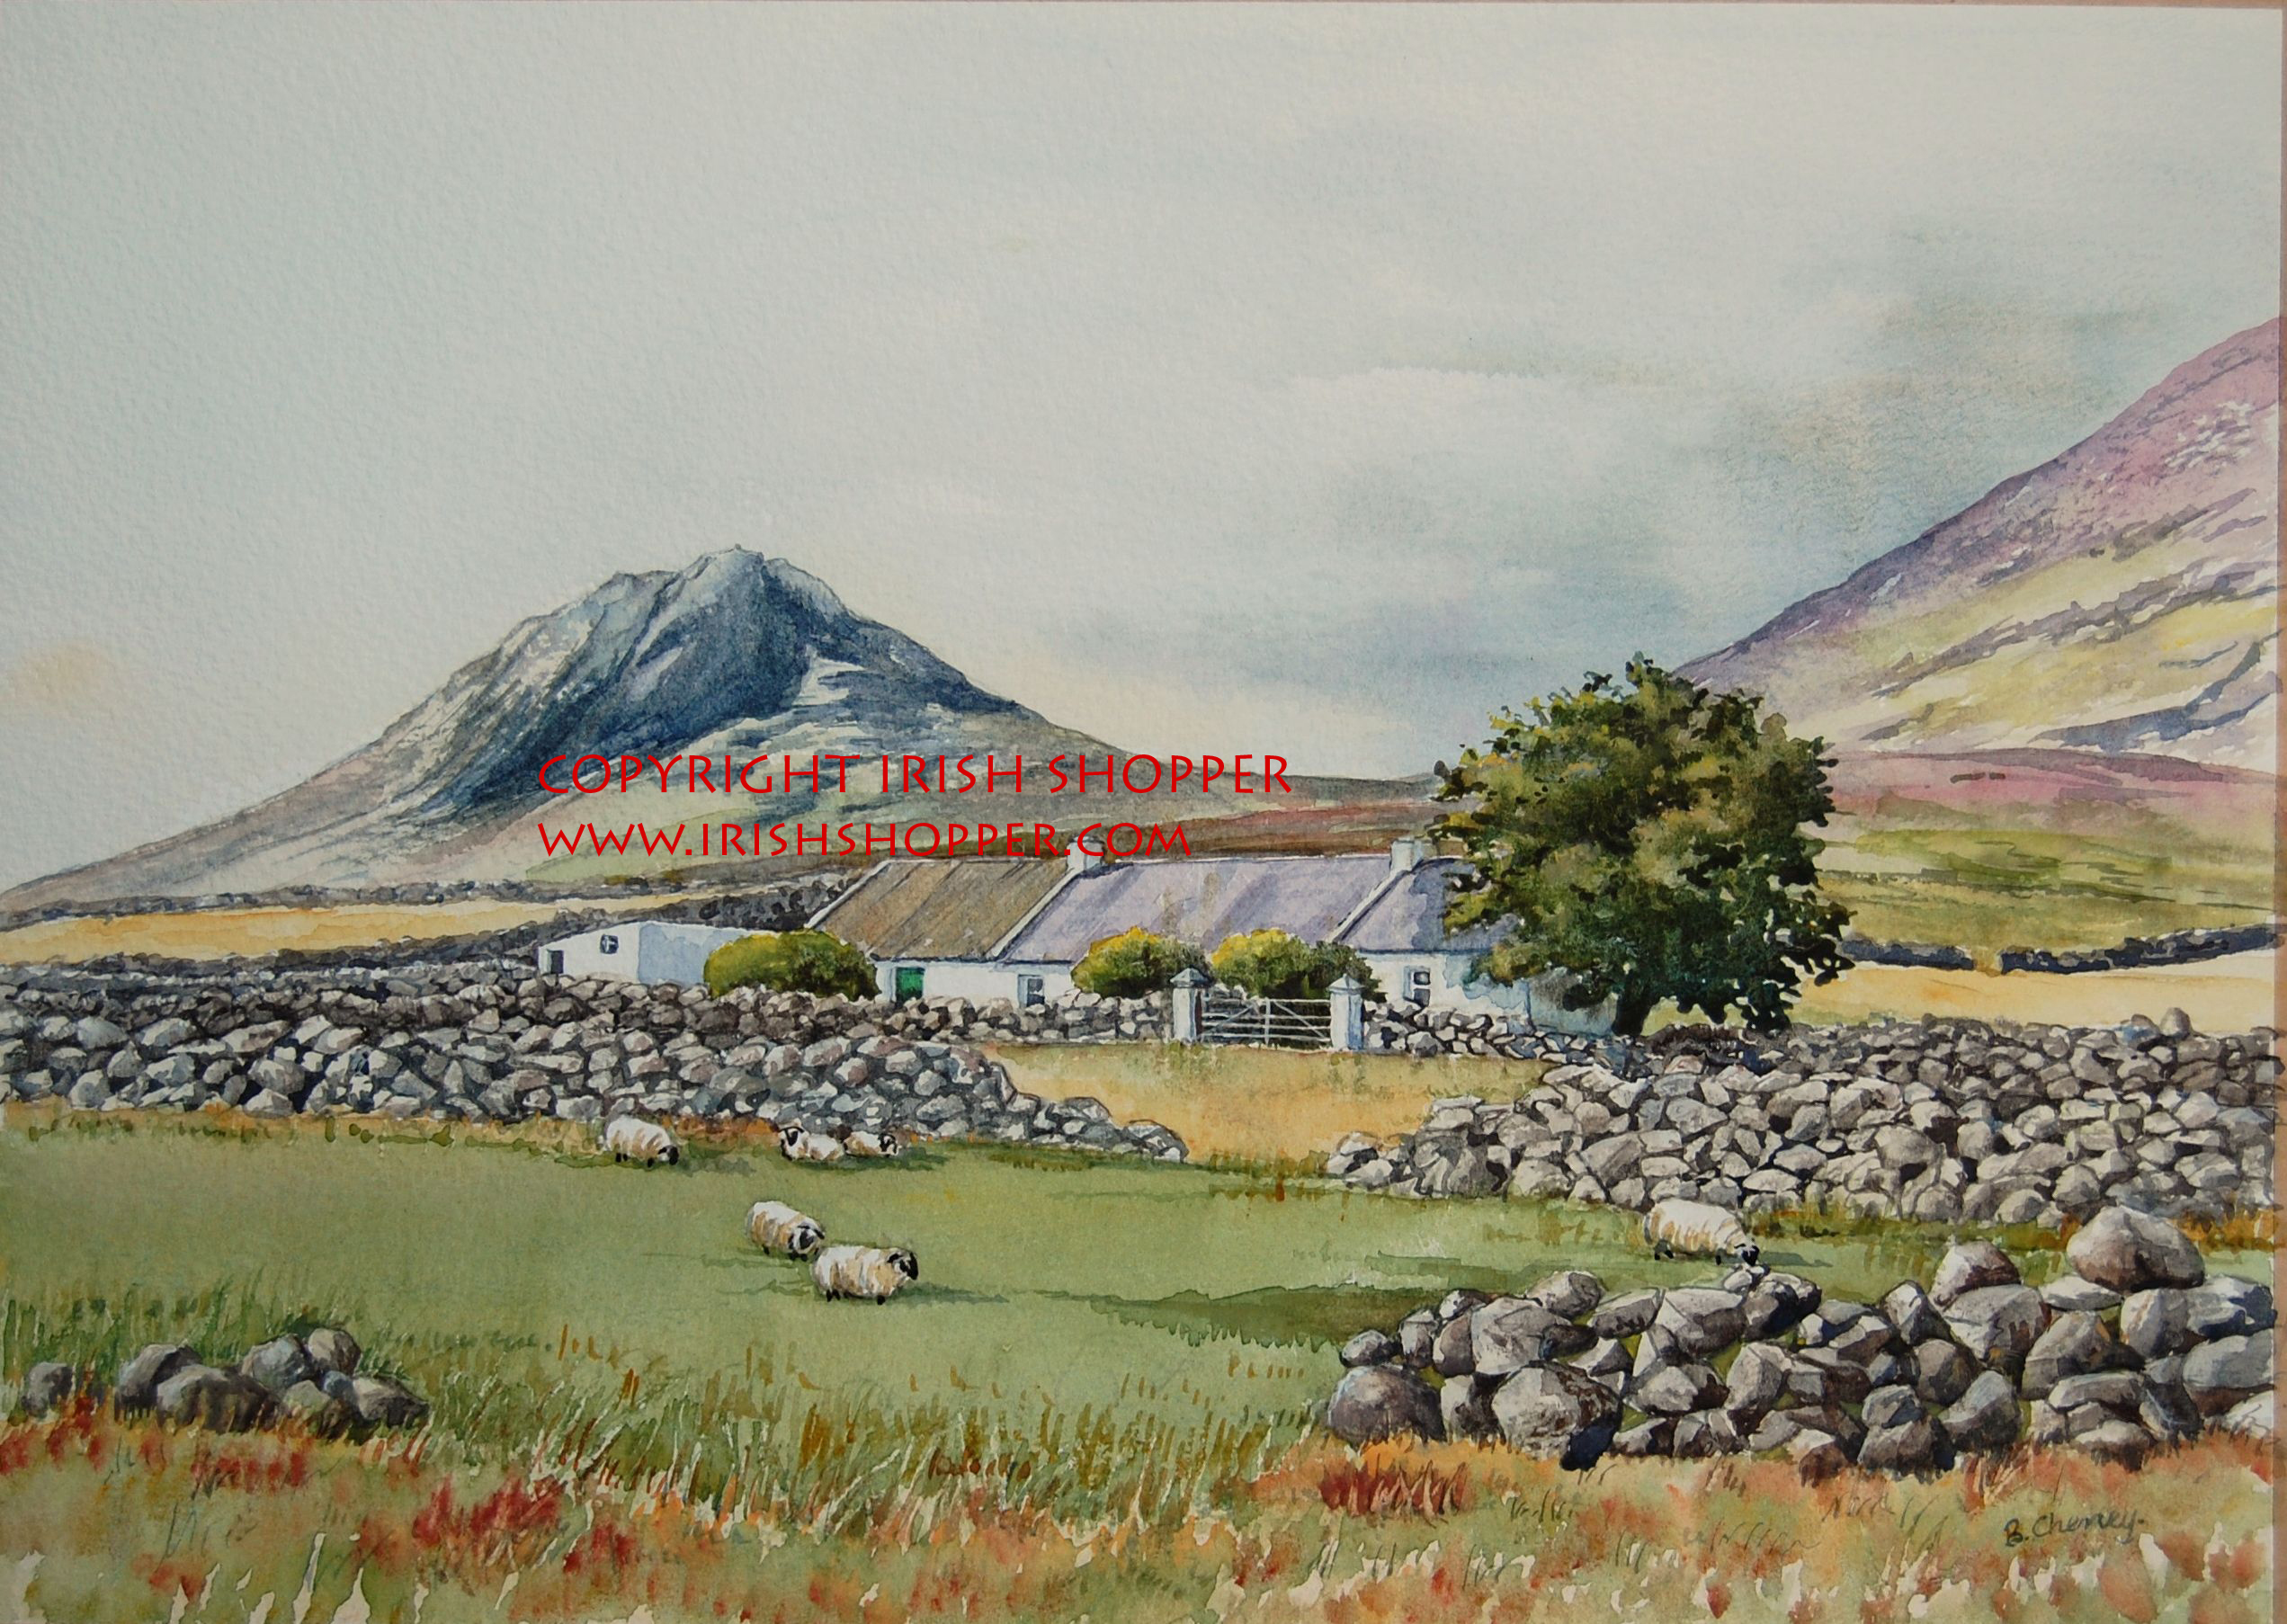 Farm at Wee Binian Mountain - A4 Print